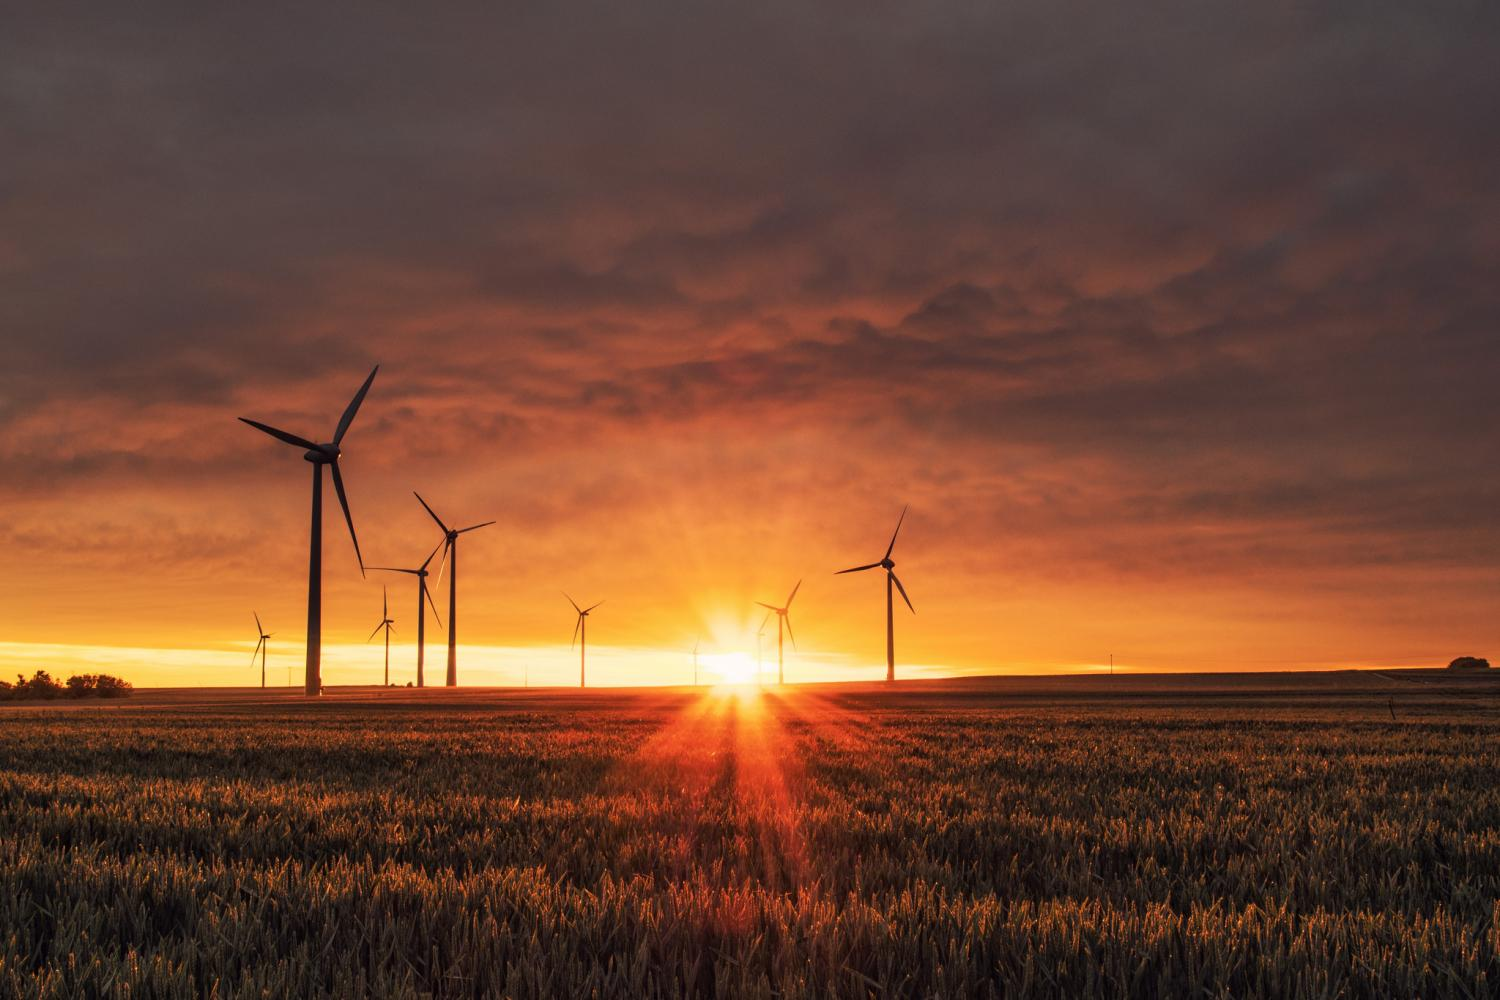 Wind power is just one technology that could scale up if this renewables aggregation model gainstraction.